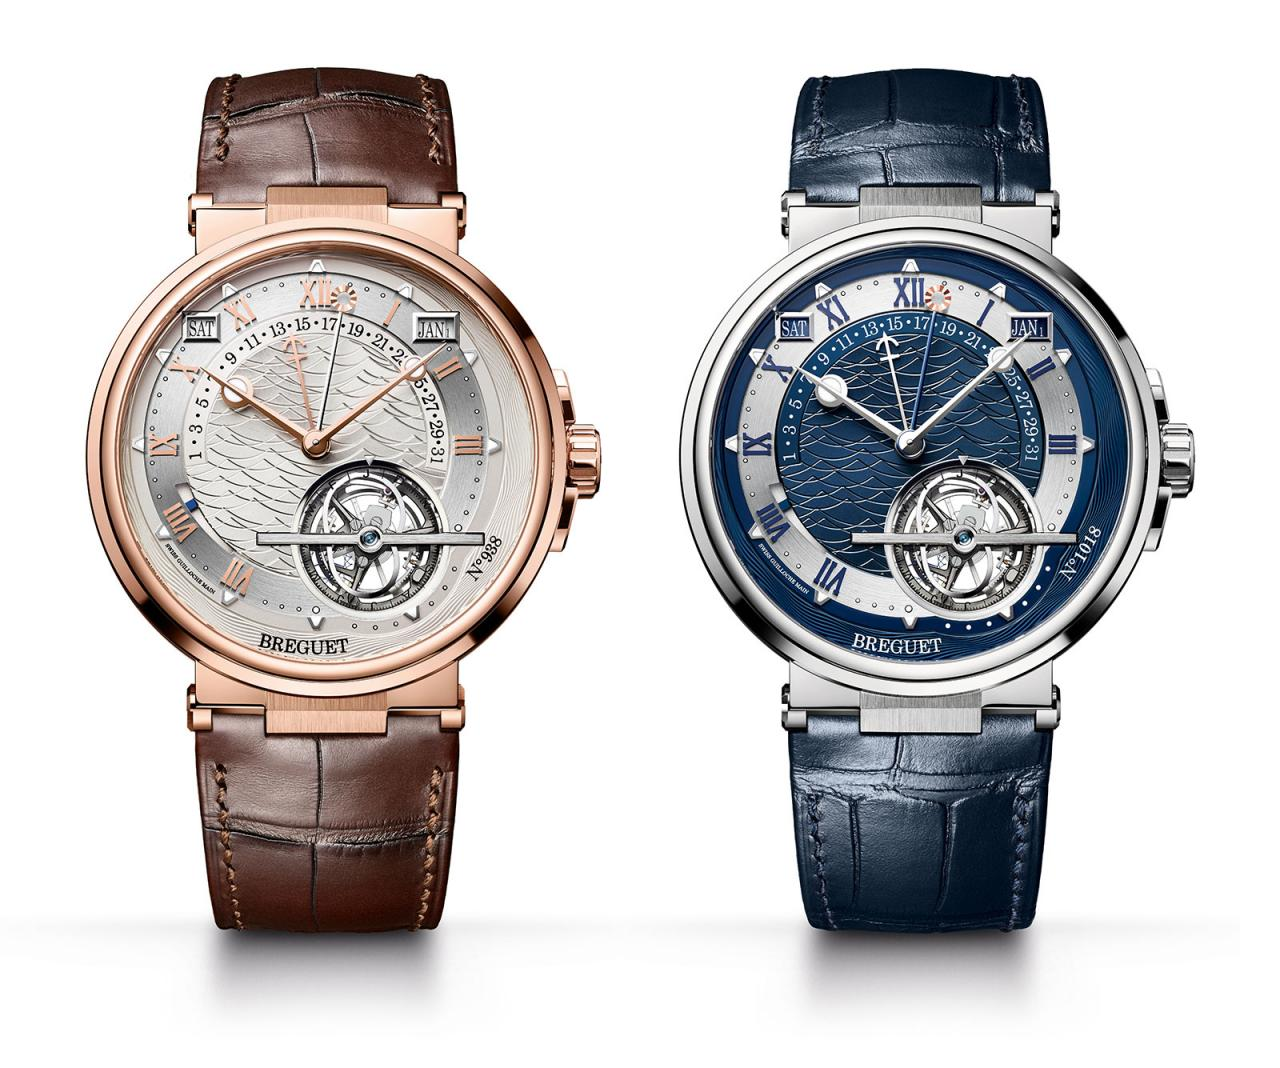 Breguet Équation Marchante 5887 rose gold and platinum